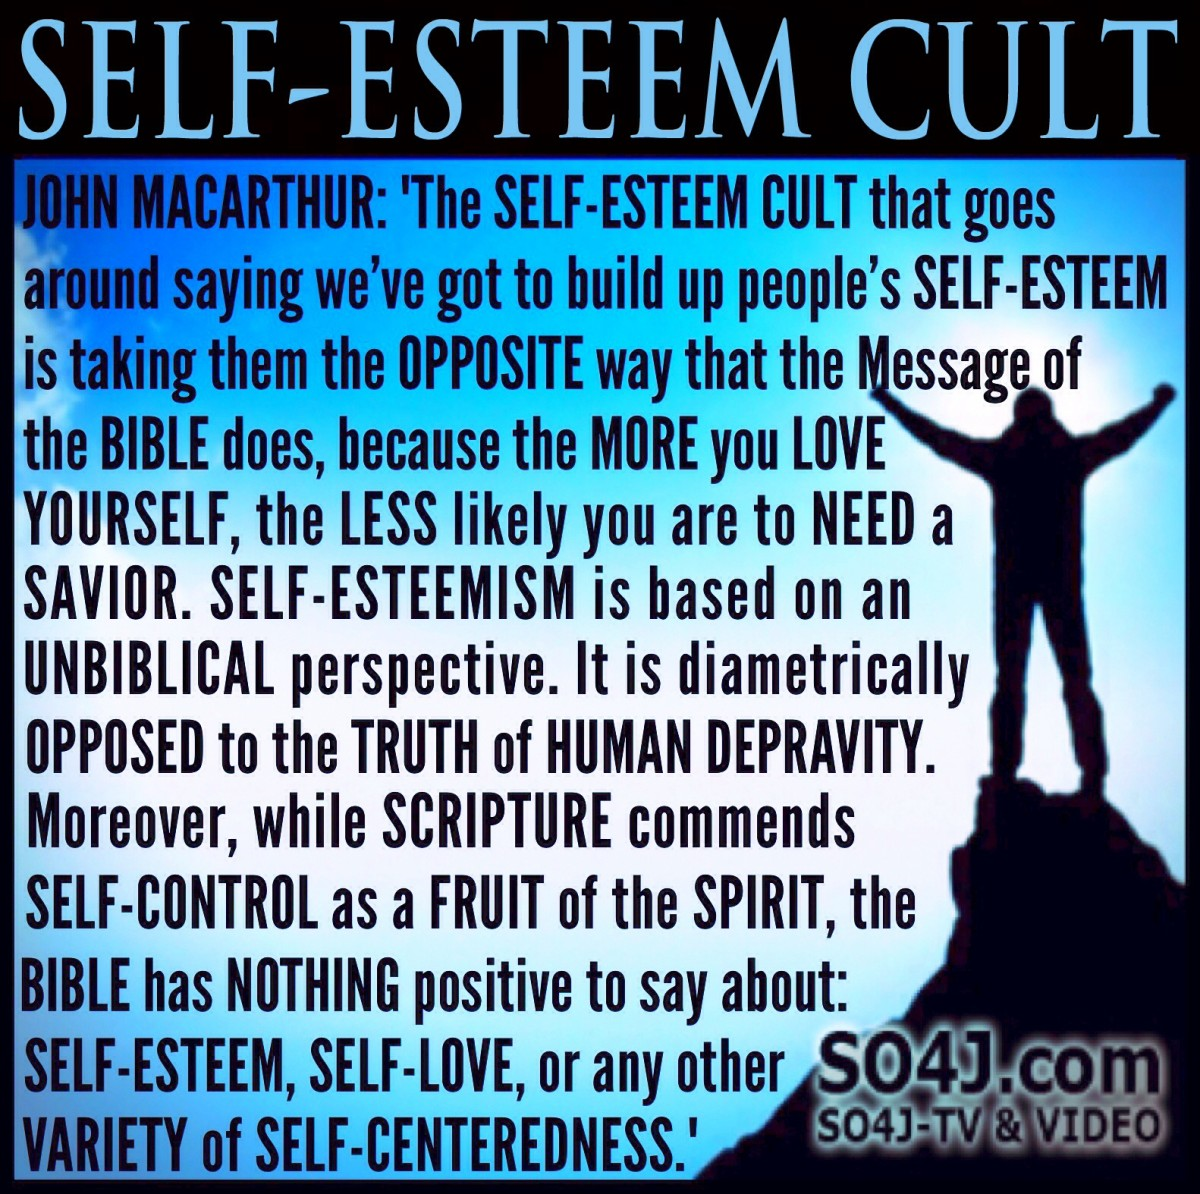 Selfism – Part II - A Sign of the Perilous Last Days